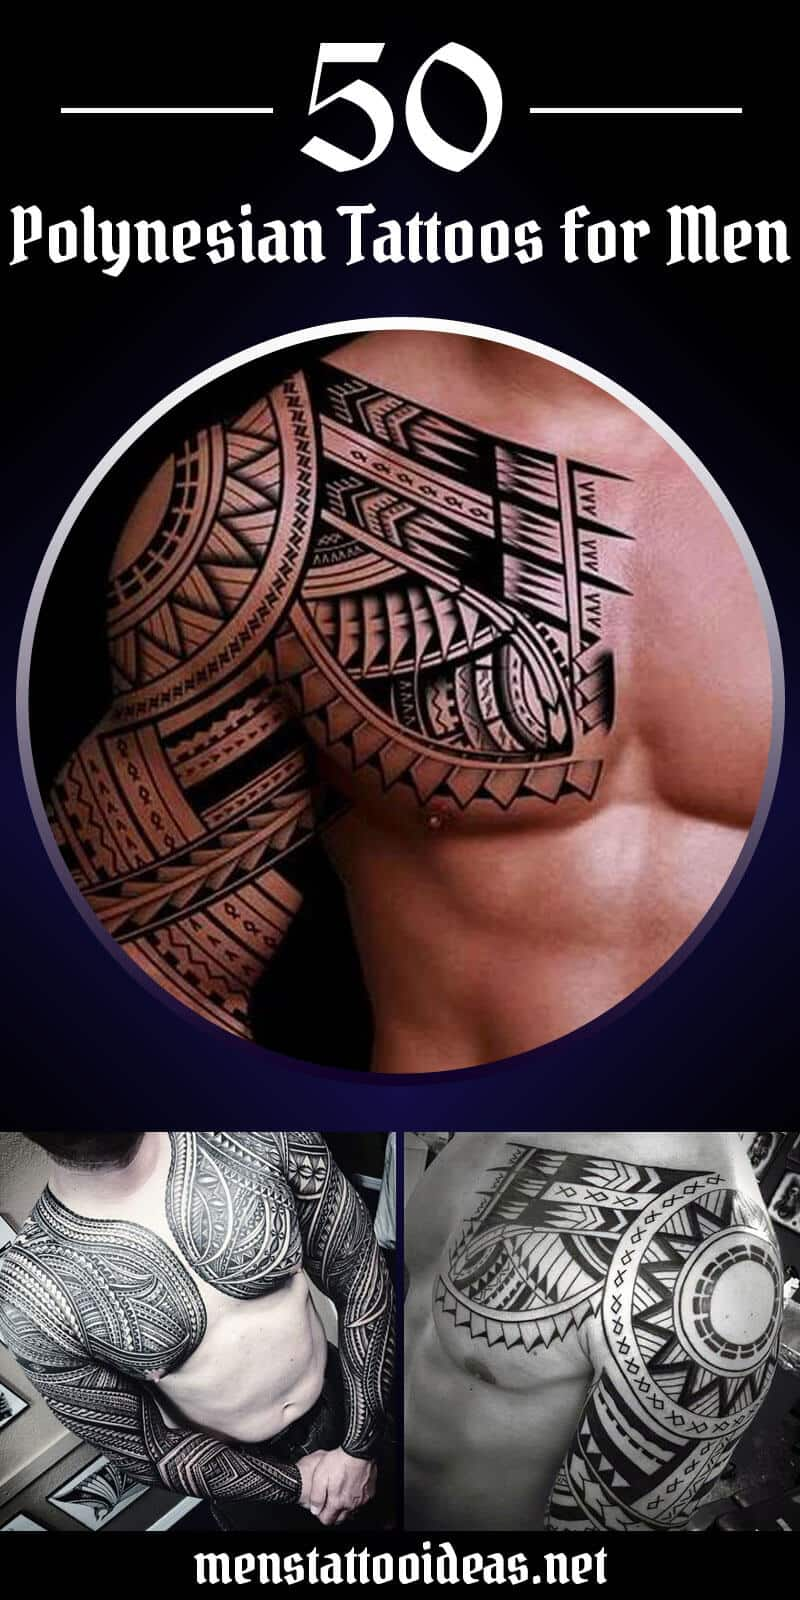 d65397f0203f8 Polynesian Tattoos for Men - Ideas and Designs for Guys